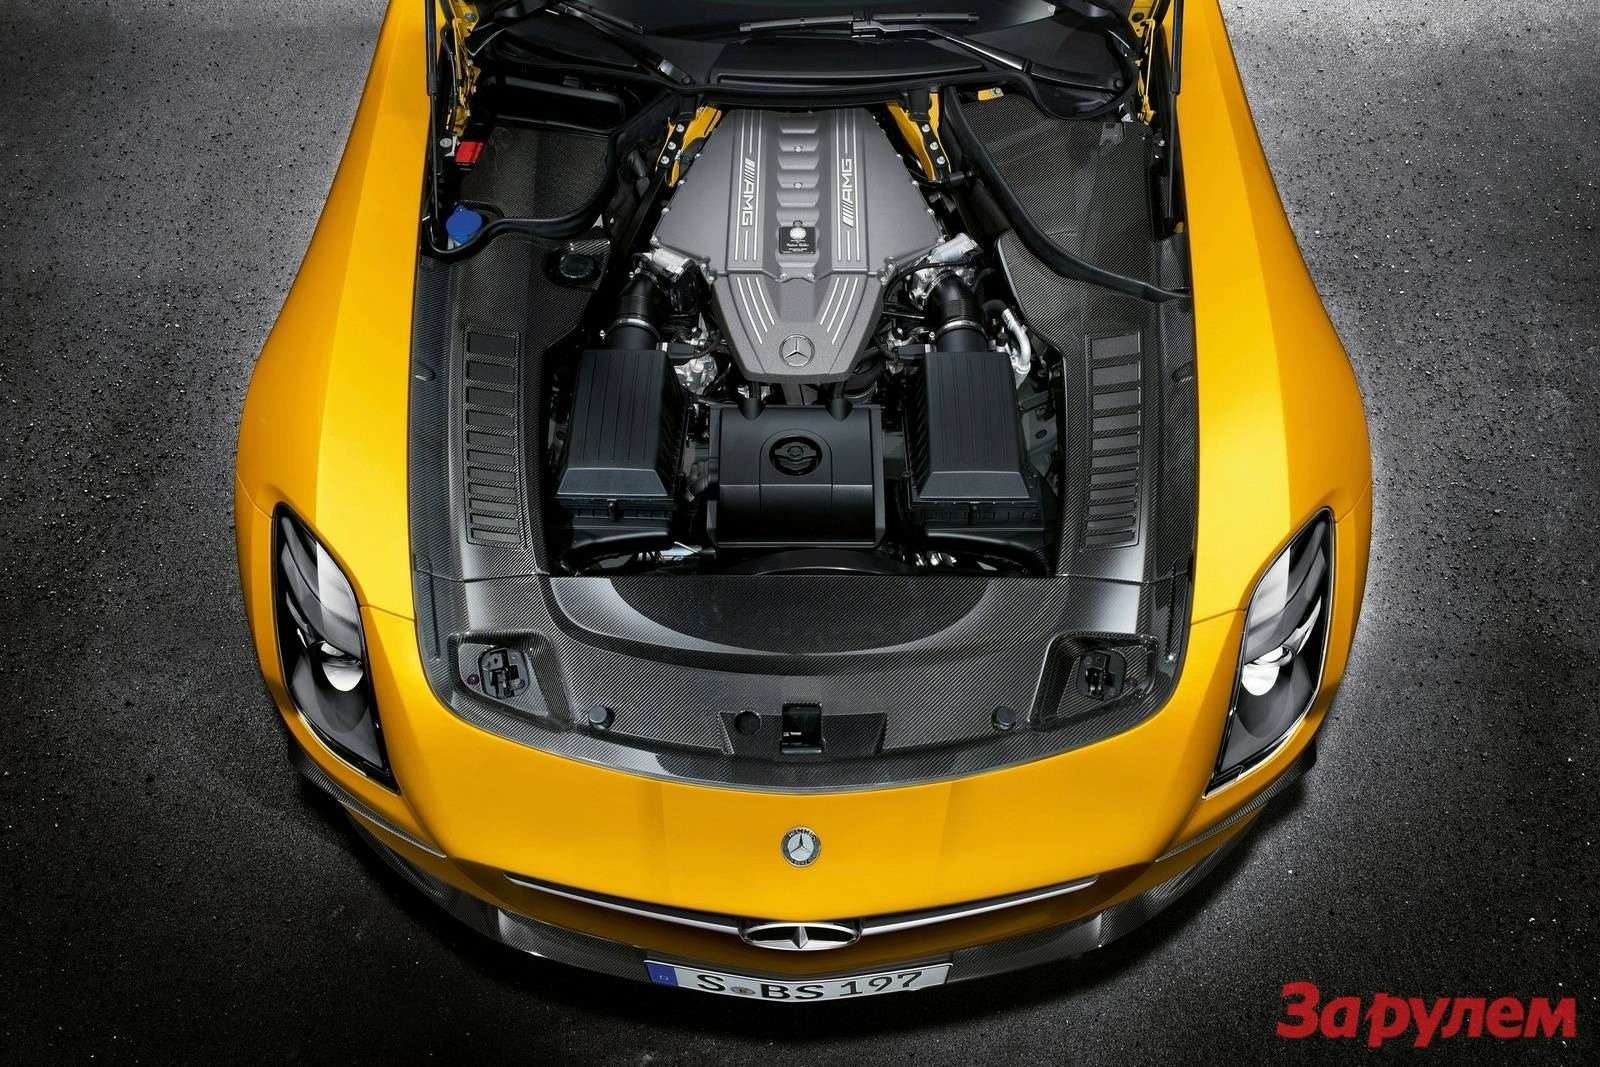 Mercedes-Benz SLS AMG Black Series engine compartment